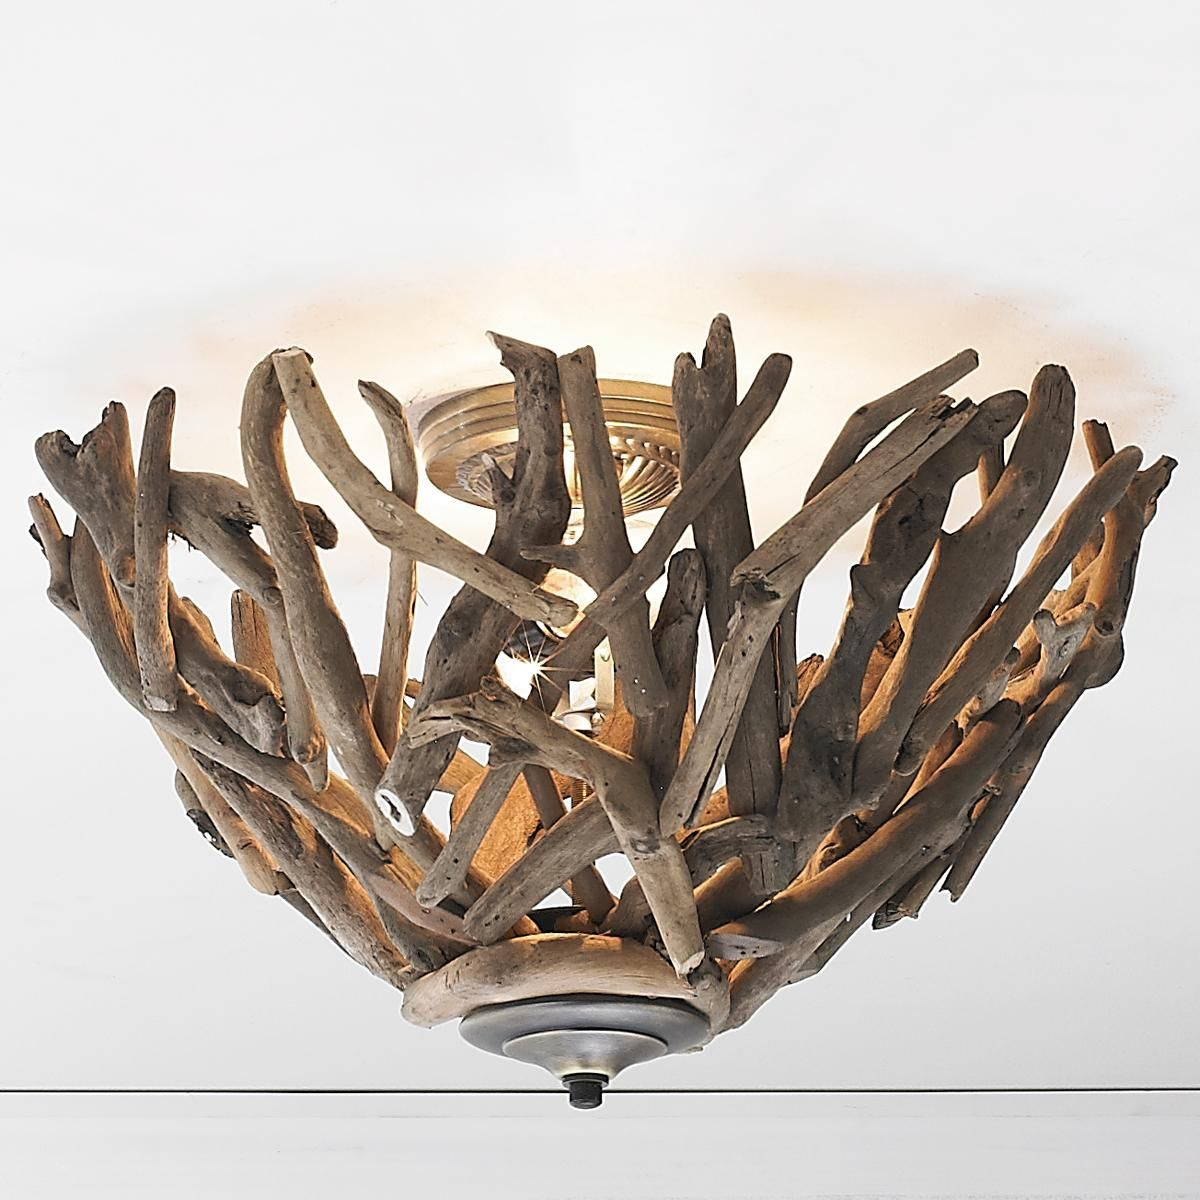 Reclaimed Driftwood Basket Ceiling Light Abstract driftwood bowl serves as sculpture for your ceiling, casting entrancing patterns of light all over the room.